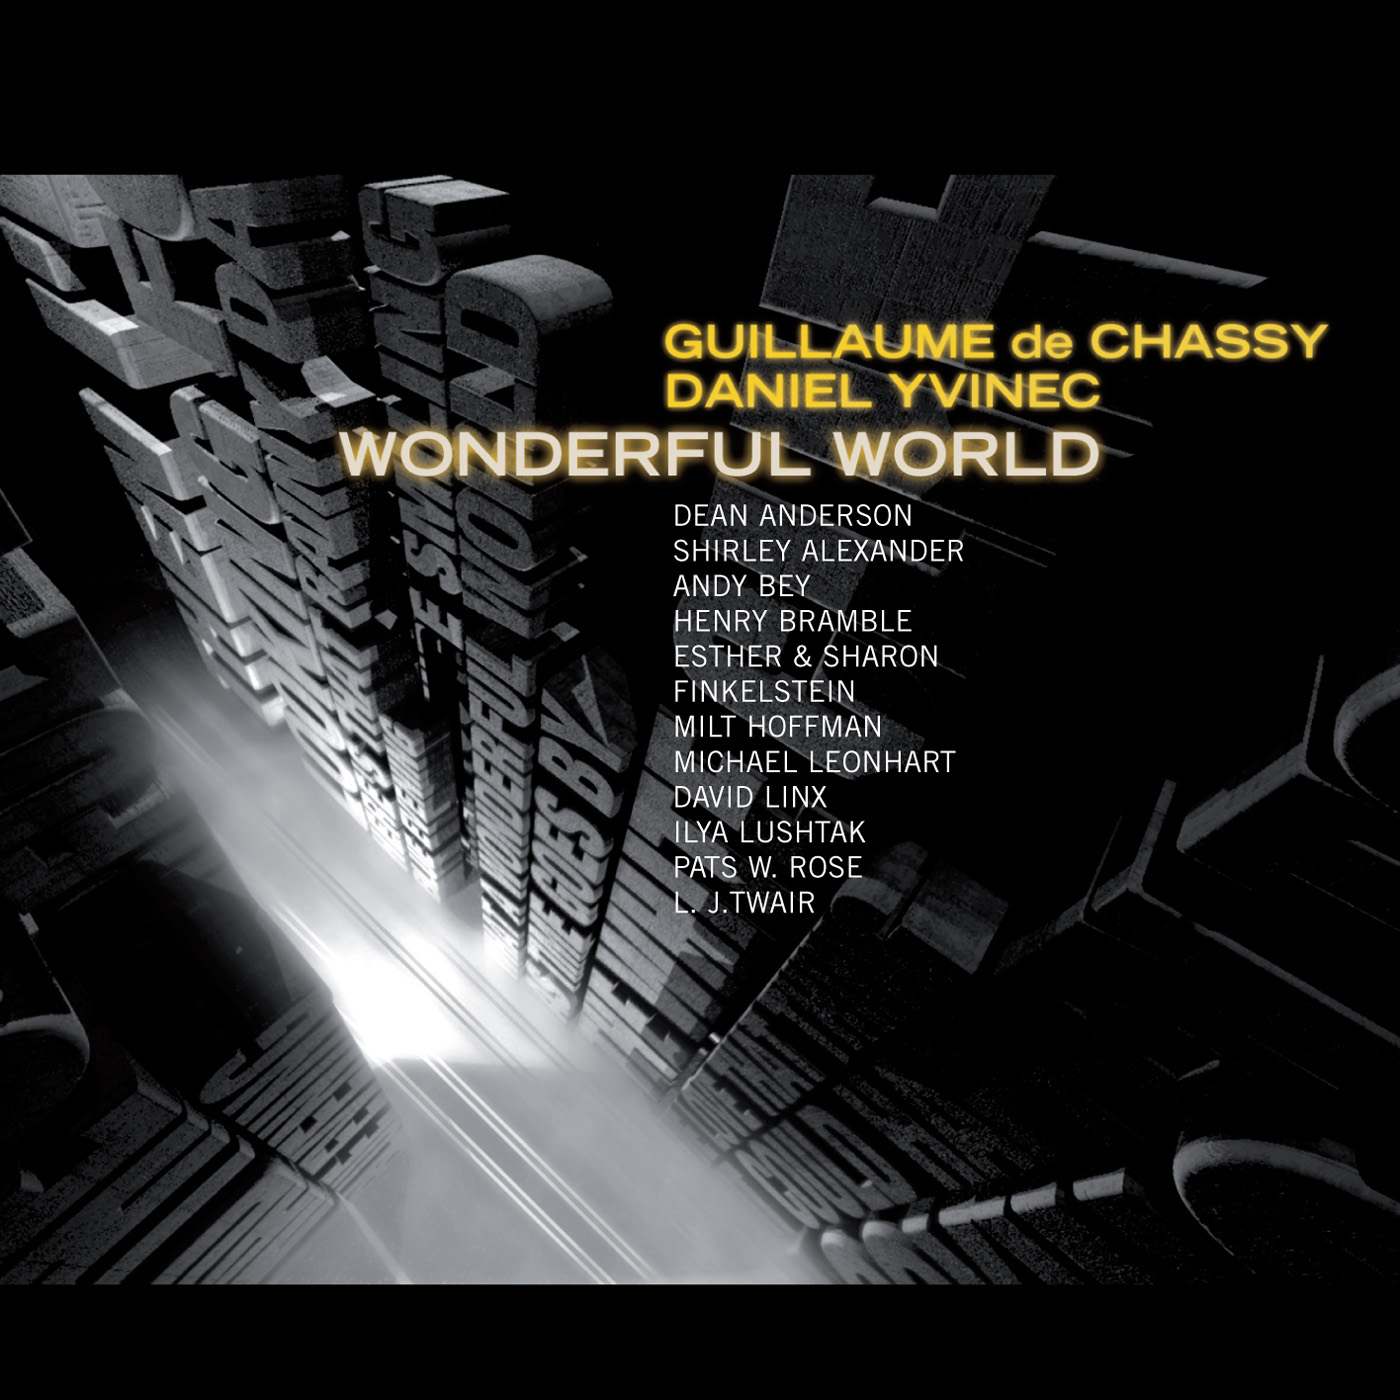 Wonderful World by Guillaume de Chassy cover